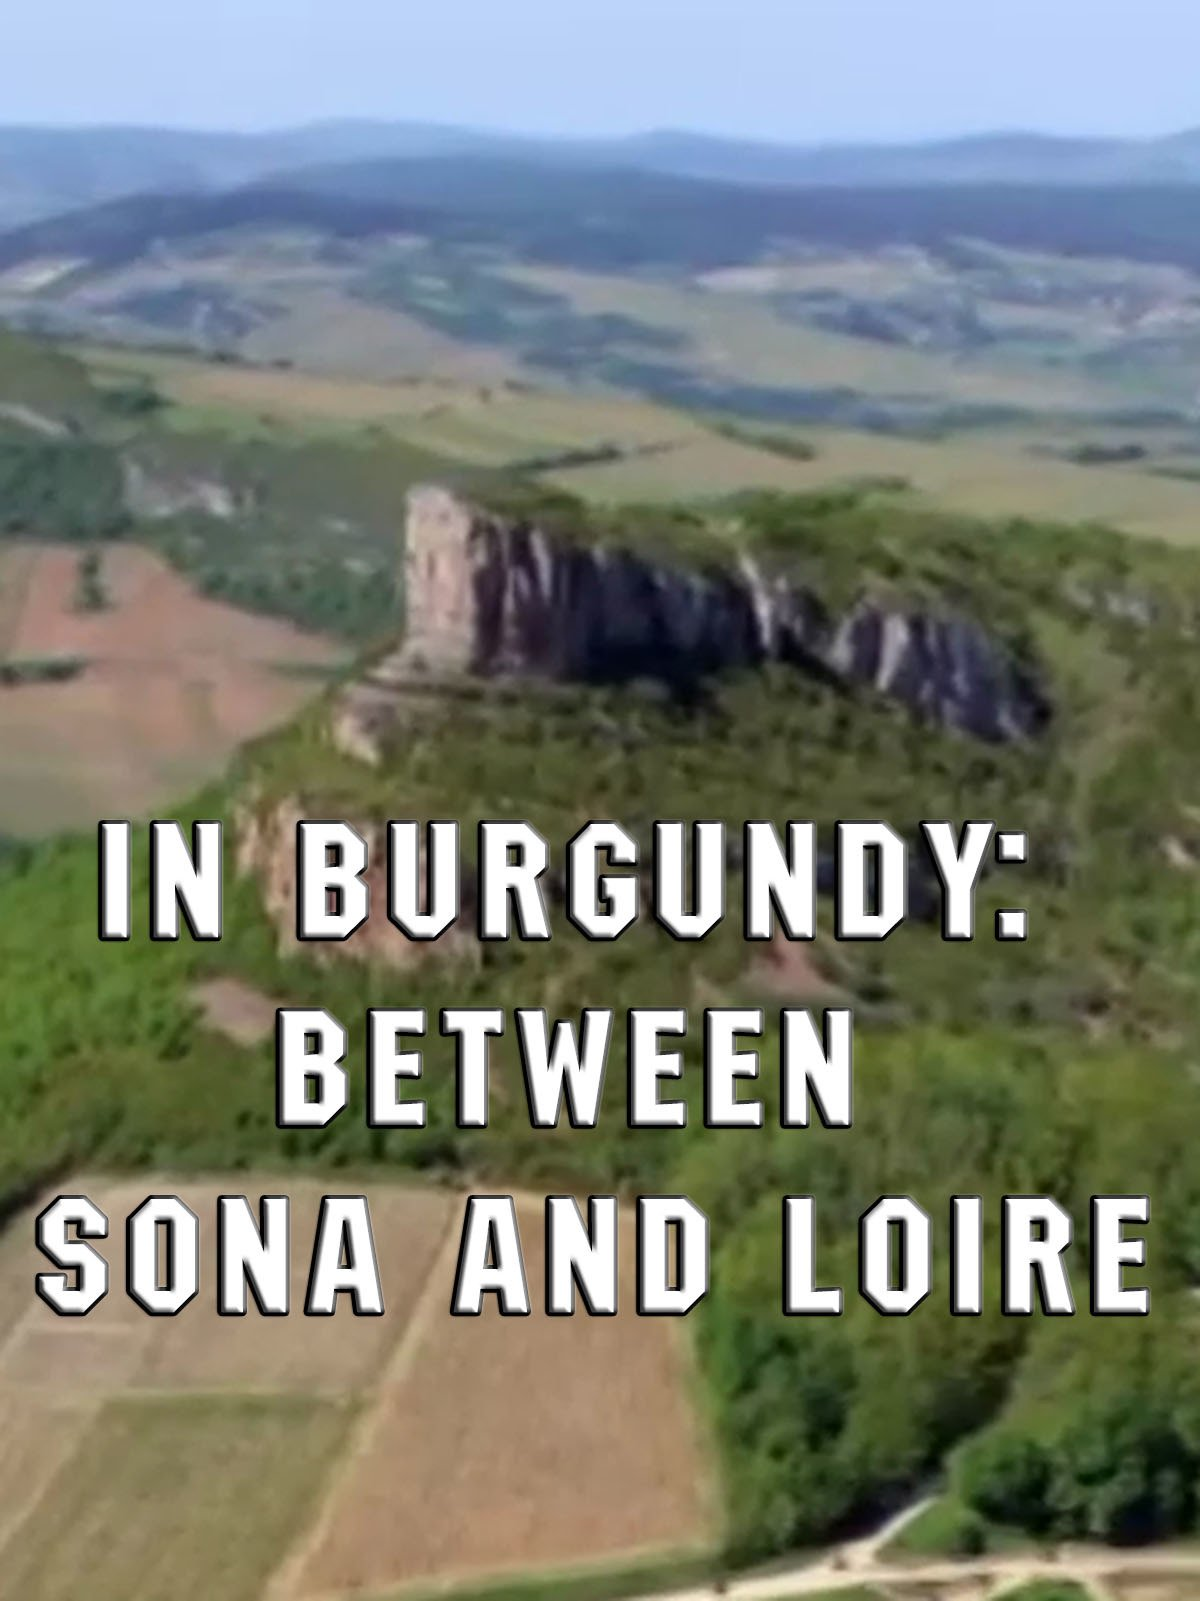 In Burgundy: between Sona and Loire